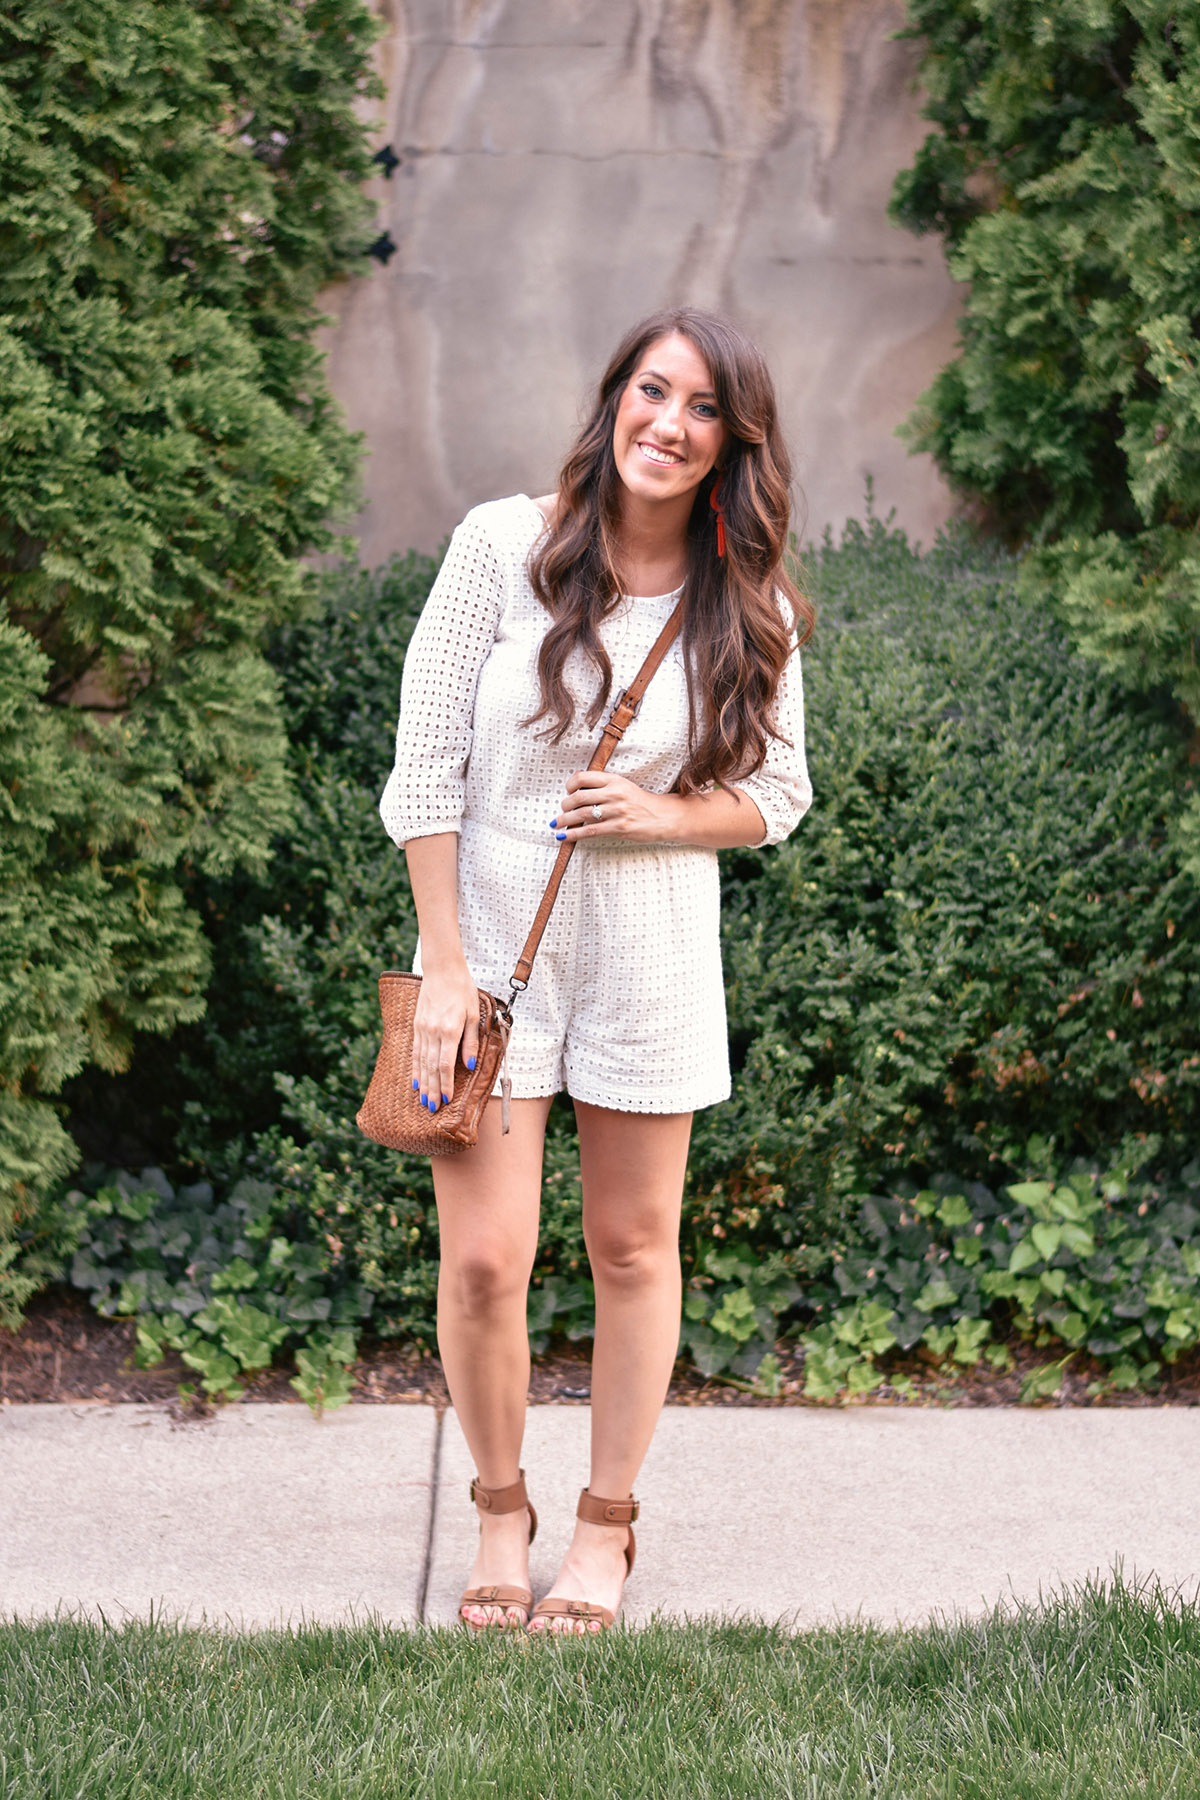 [ original post here ] Anthropologie romper [ similar ] / bag [ similar ] / earrings [ similar ] / sandals [ similar ]